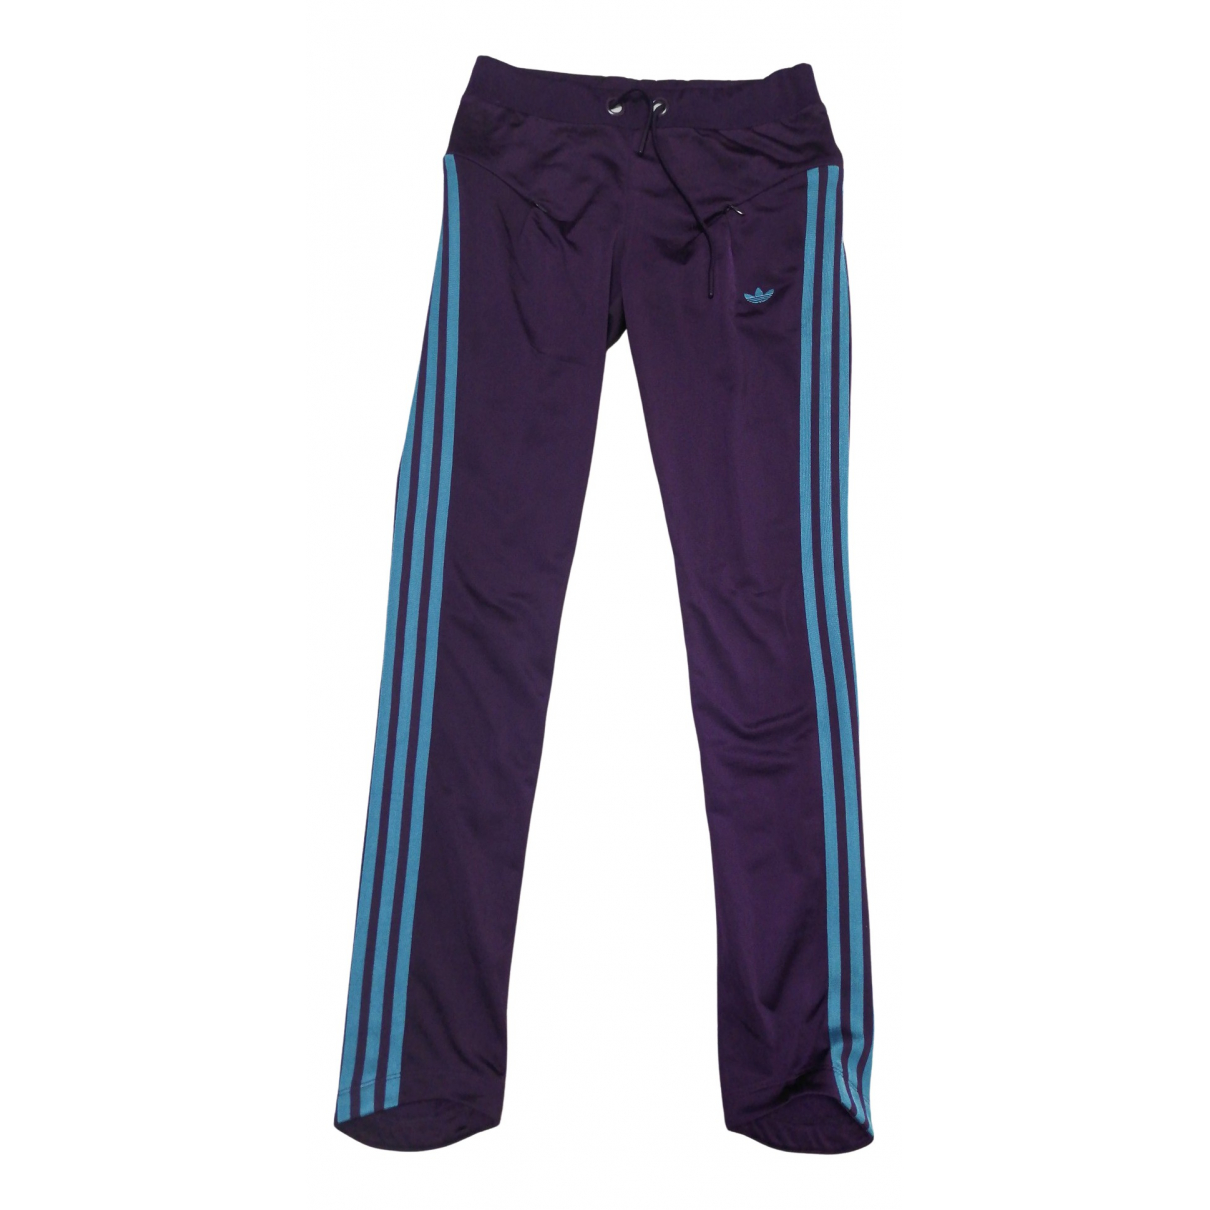 Adidas \N Hose in  Lila Polyester